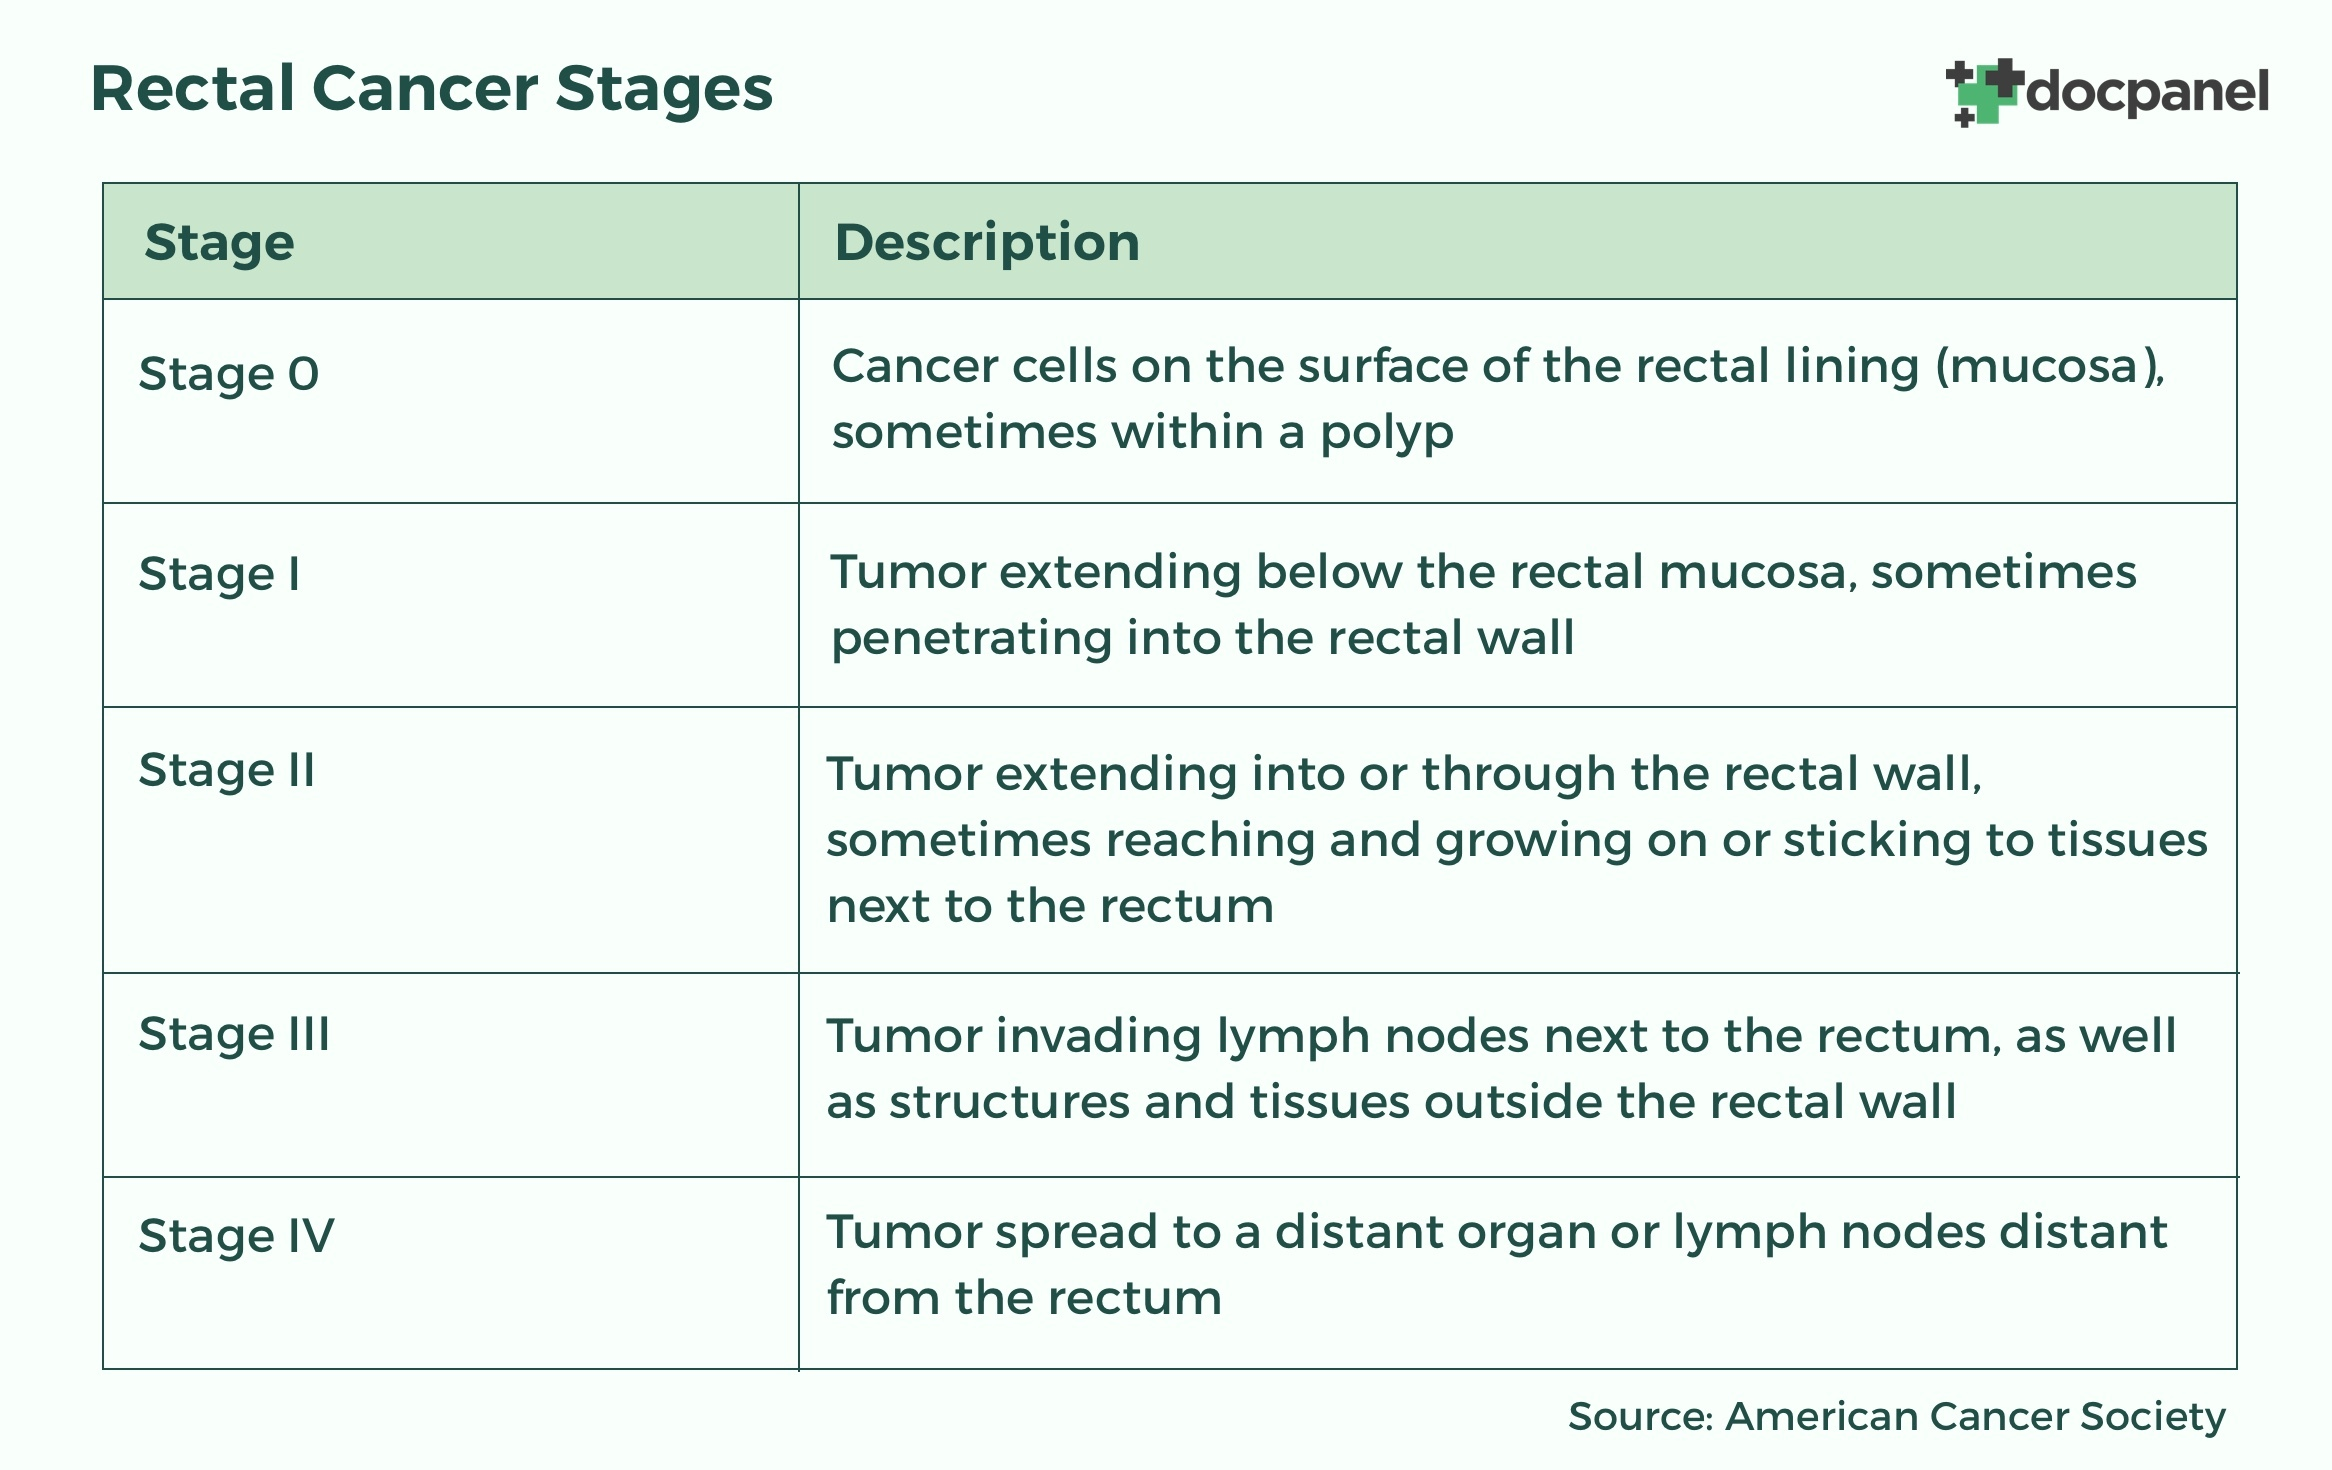 rectal-cancer-staging-chart.jpg